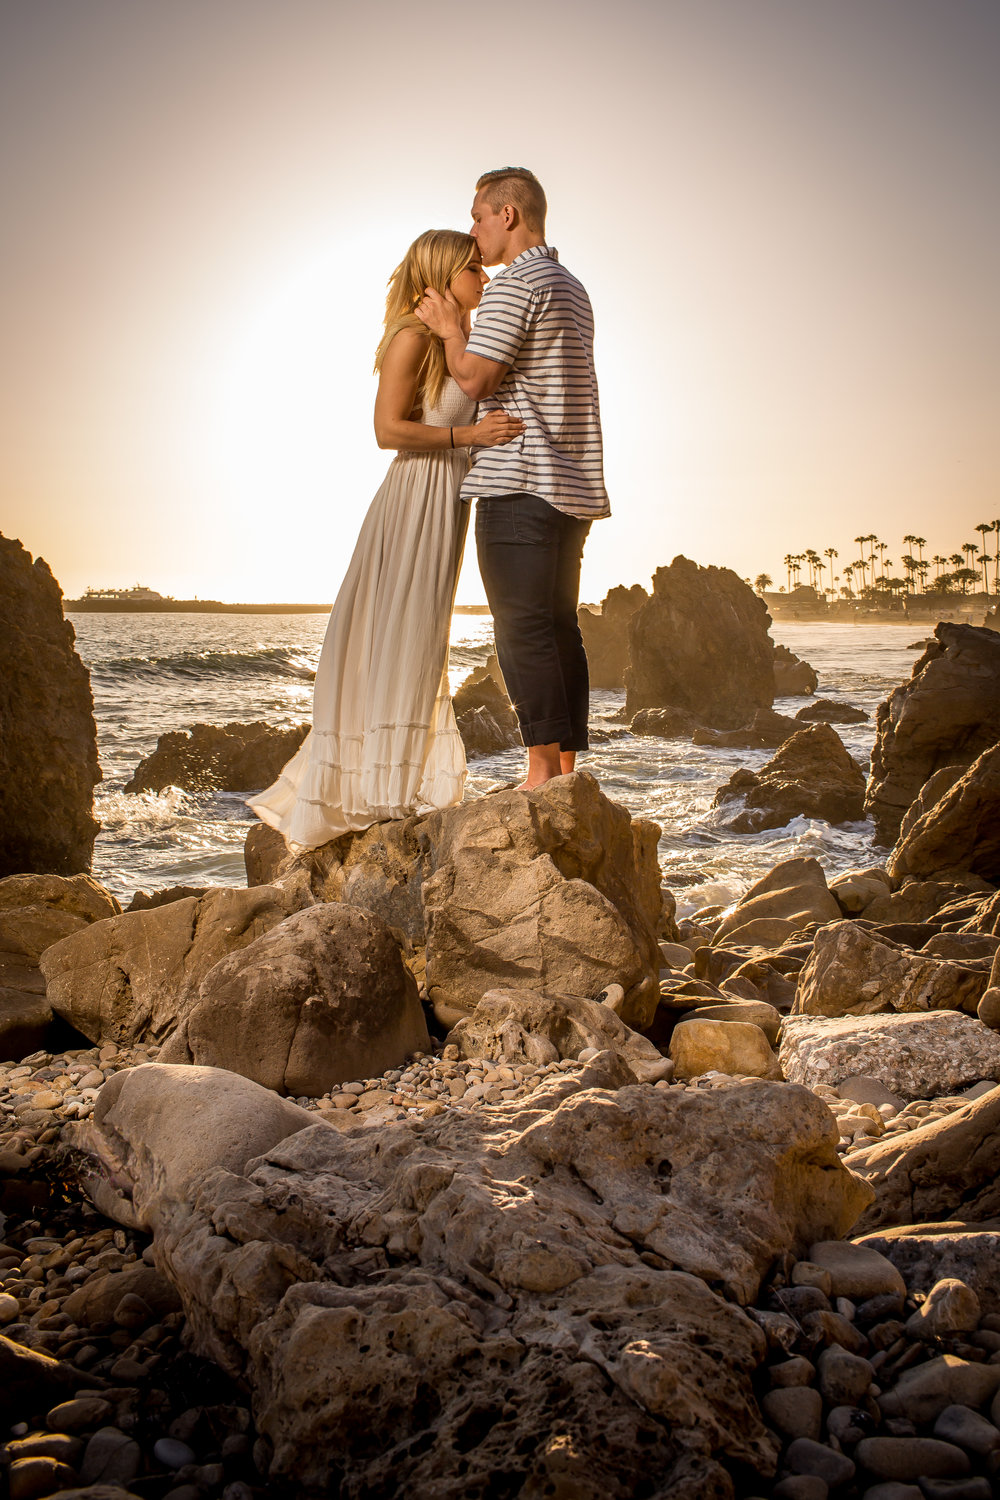 Ali-Nick-Engagement-Beach-16.jpg